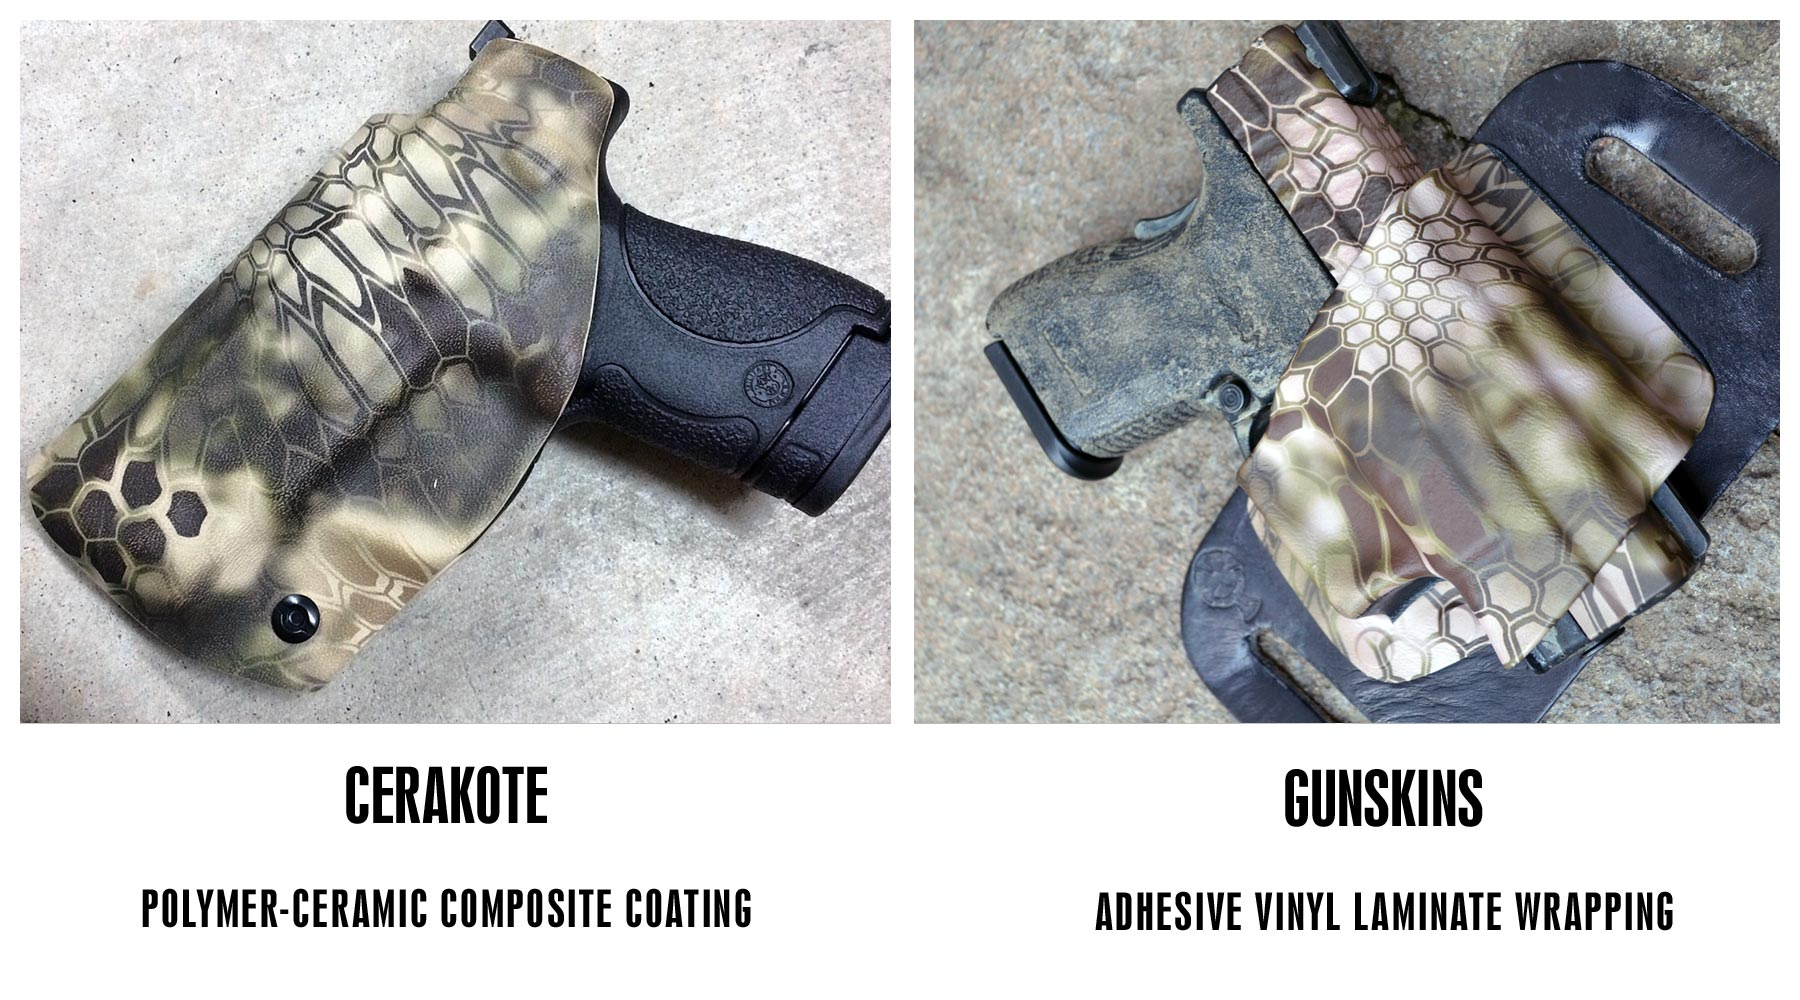 GunSkins and Cerakote Finish Comparison